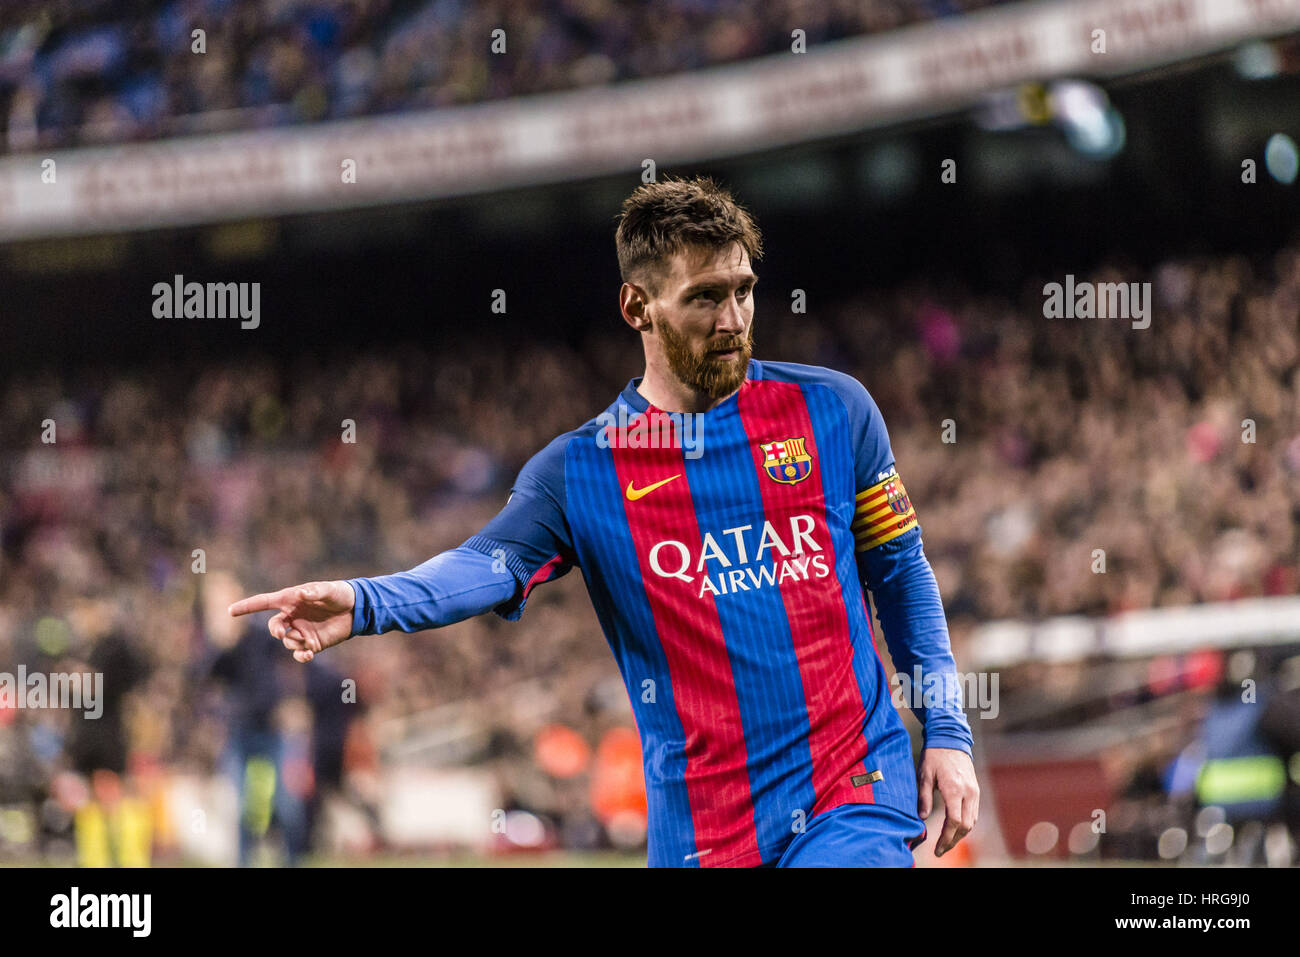 Barcelona, Catalonia, Spain. 1st Mar, 2017. FC Barcelona forward MESSI looks on during the LaLiga match against Stock Photo